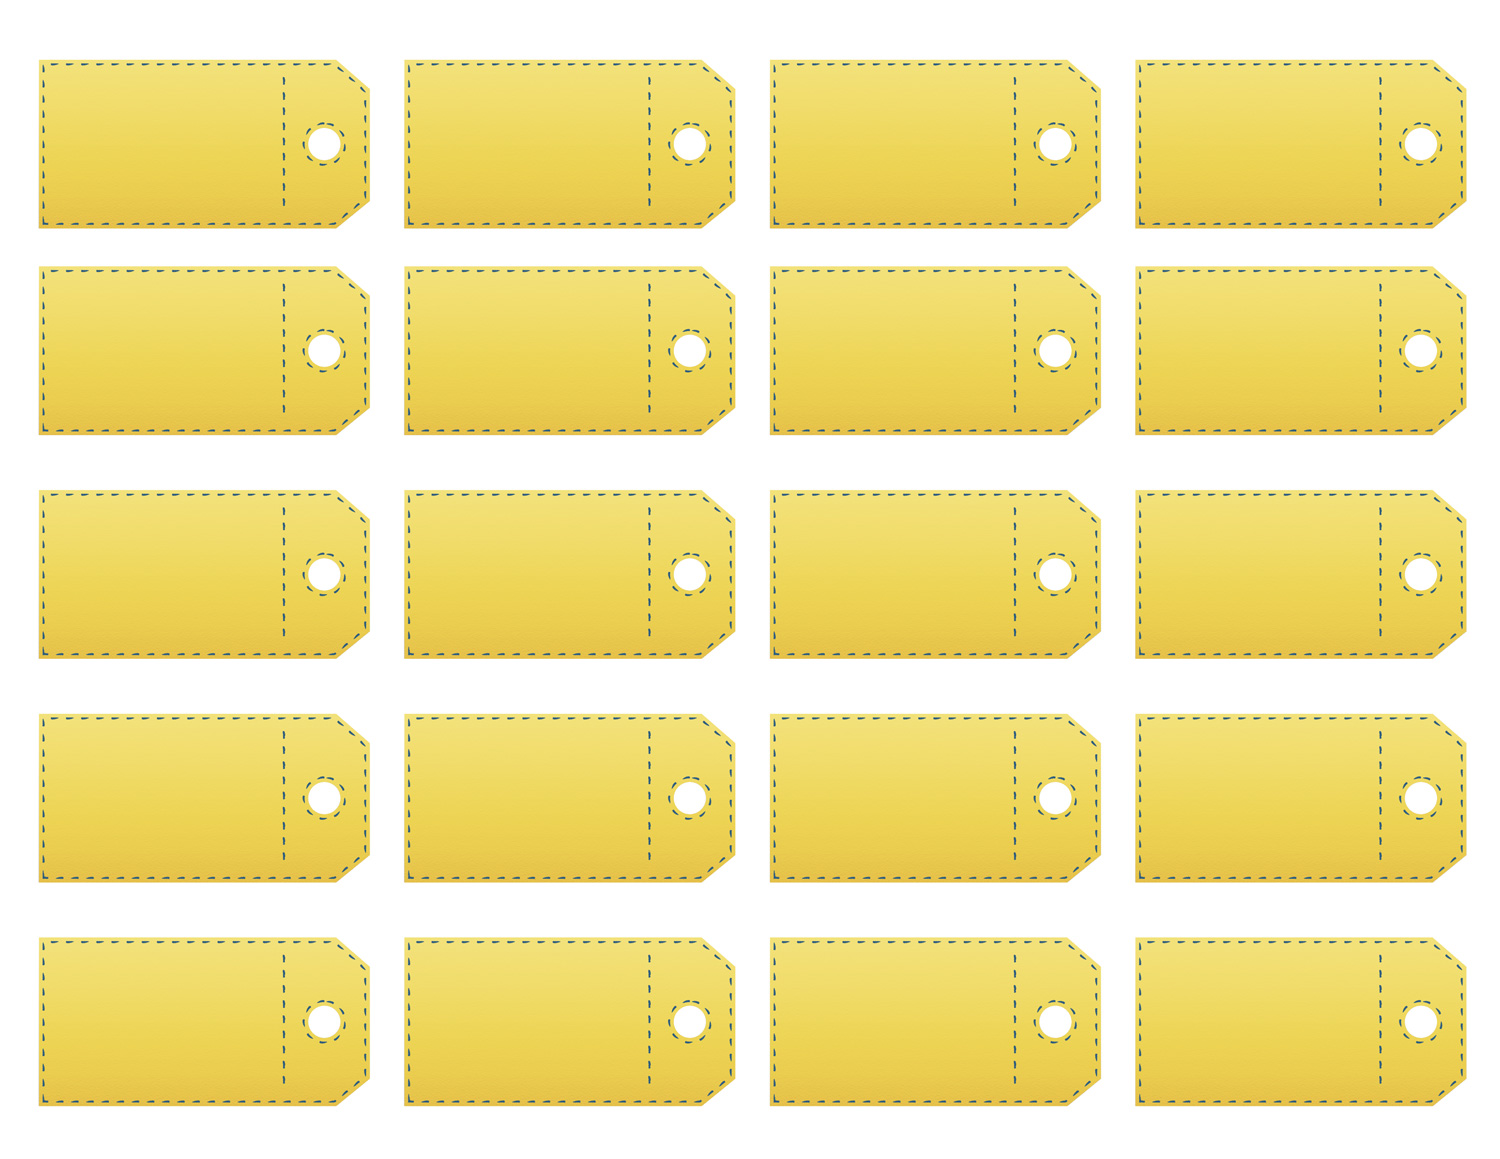 Price Tag PNG Transparent Images | PNG All